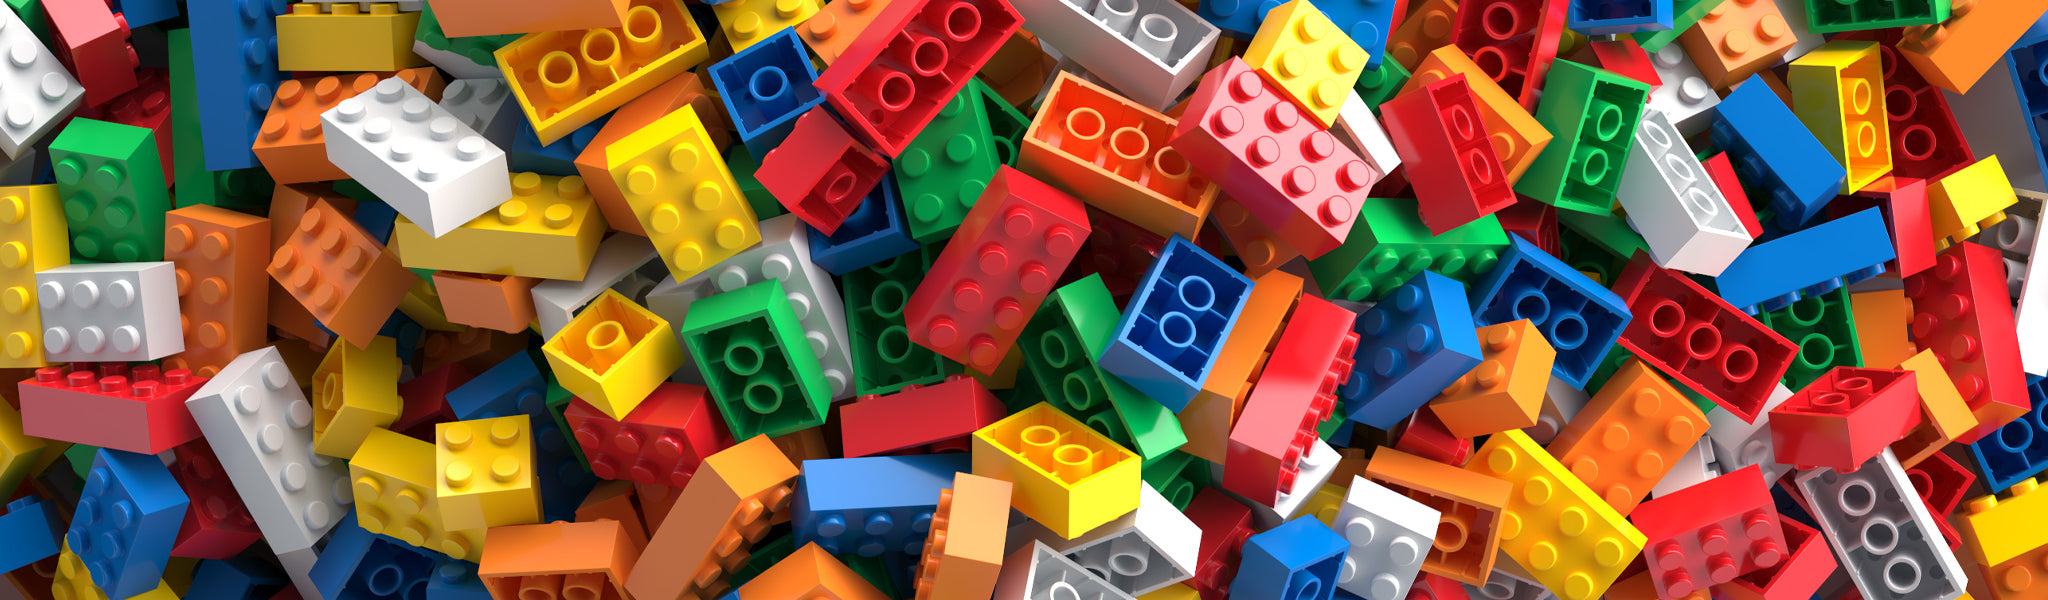 pile of brightly coloured building bricks